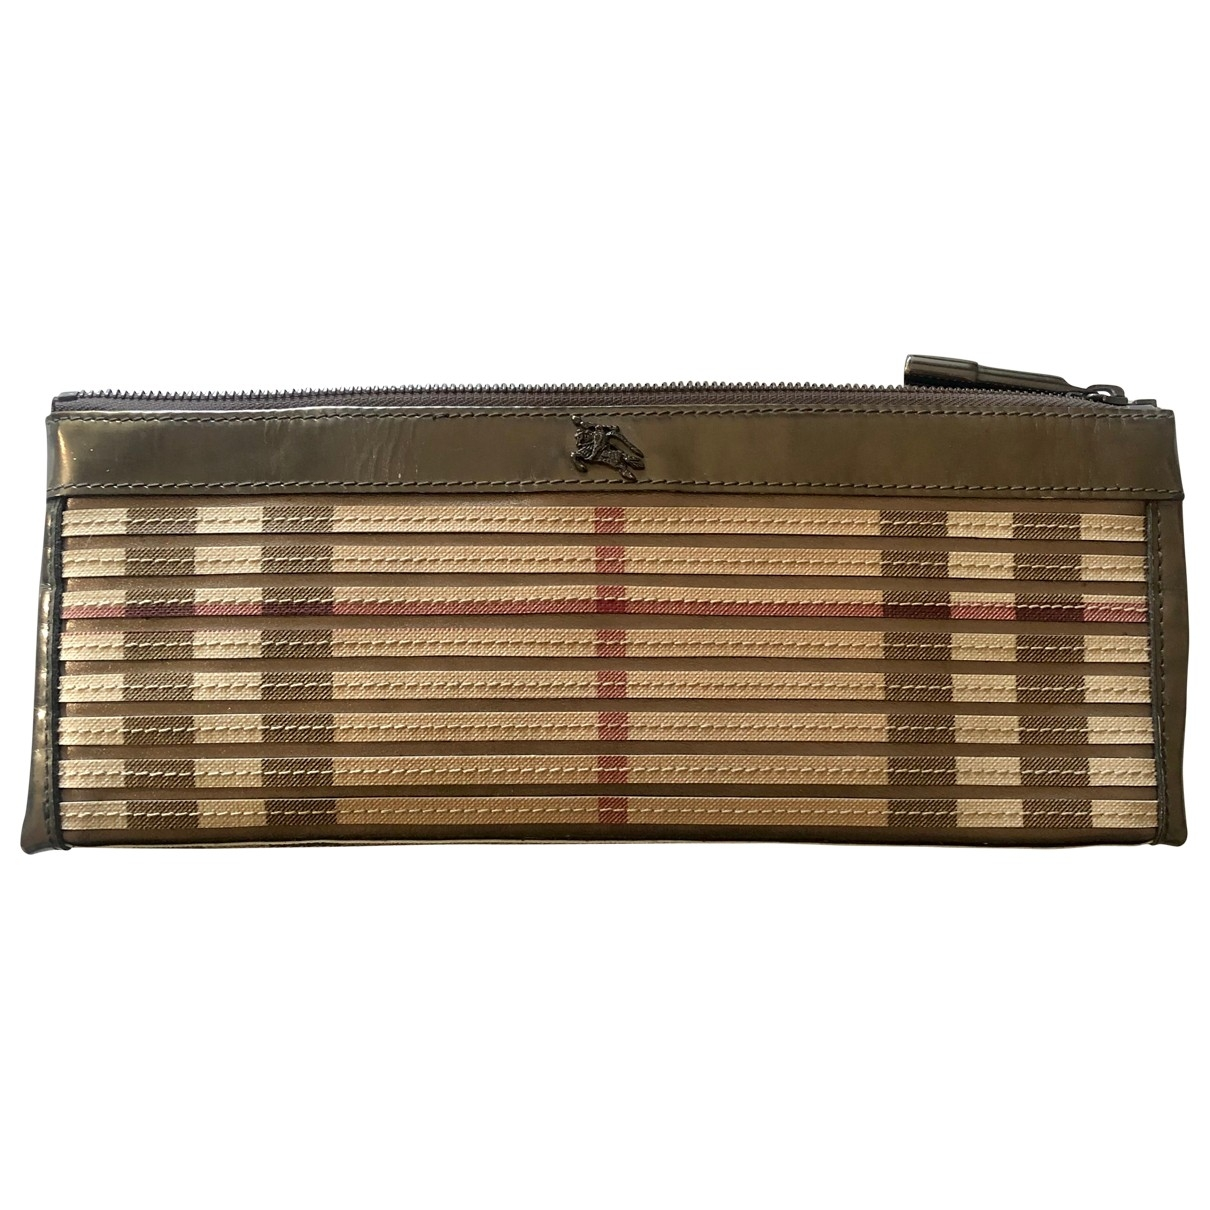 Burberry \N Multicolour Leather Clutch bag for Women \N